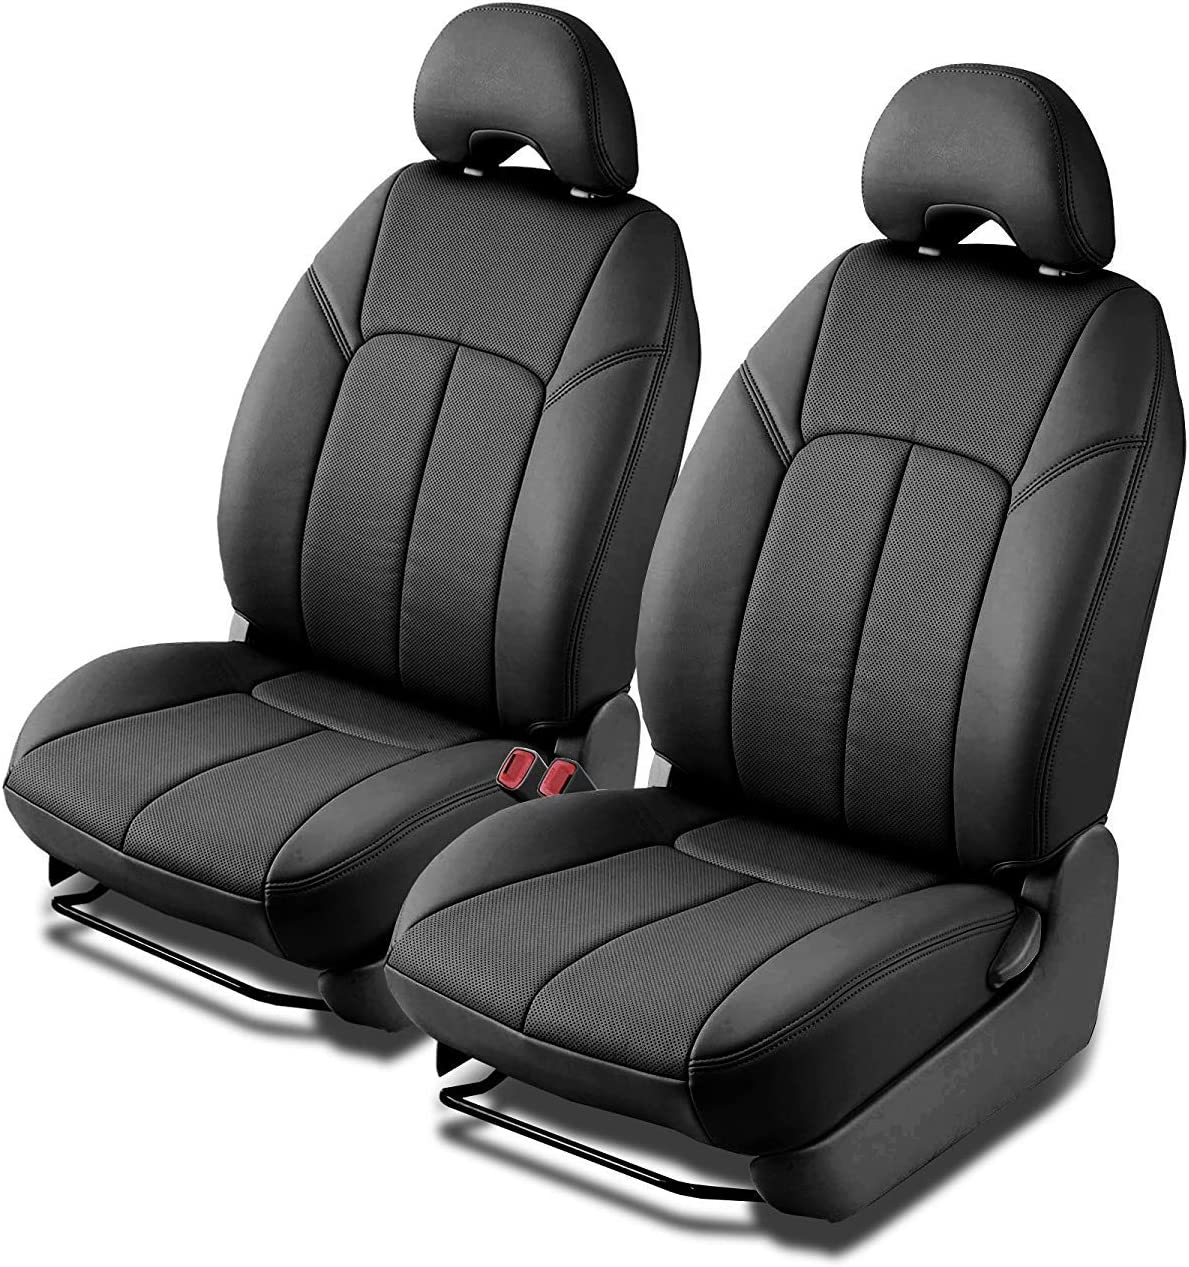 Clazzio 753811blk Black Leather Front Row Seat Cover for Chevrolet Tahoe//Suburban